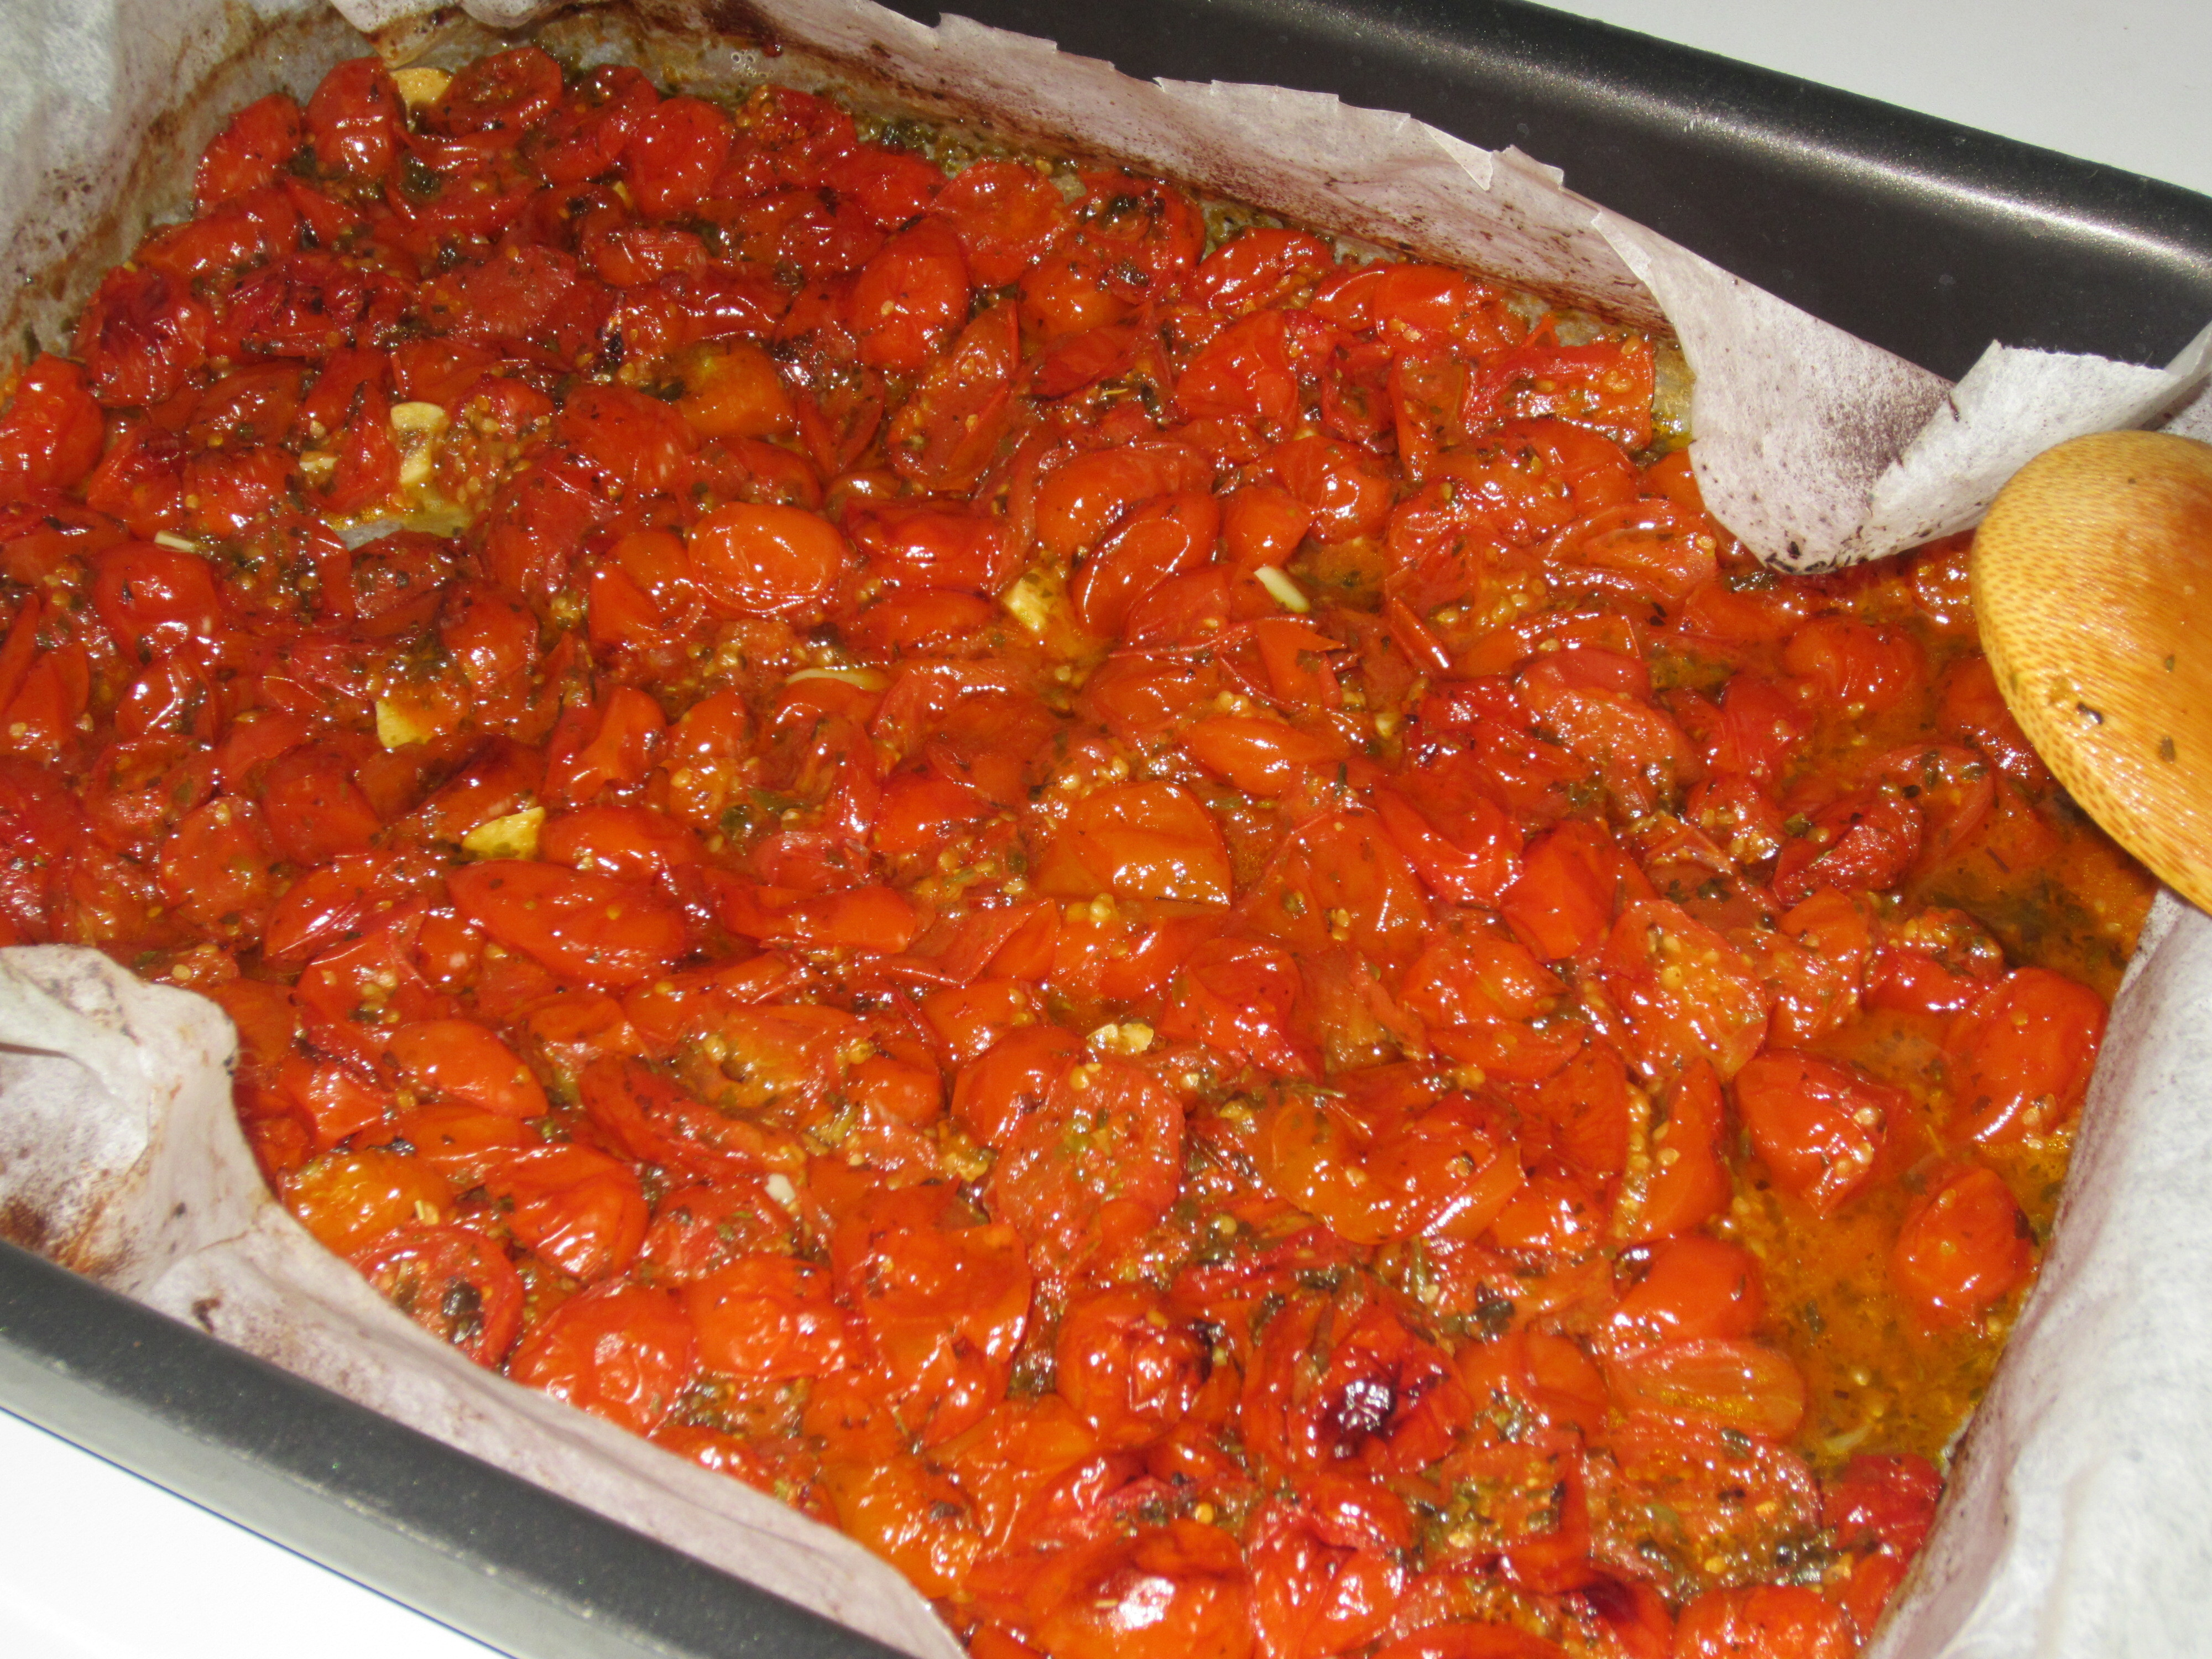 Fresh tomato sauce baked: easy and yummy! Recipe #1